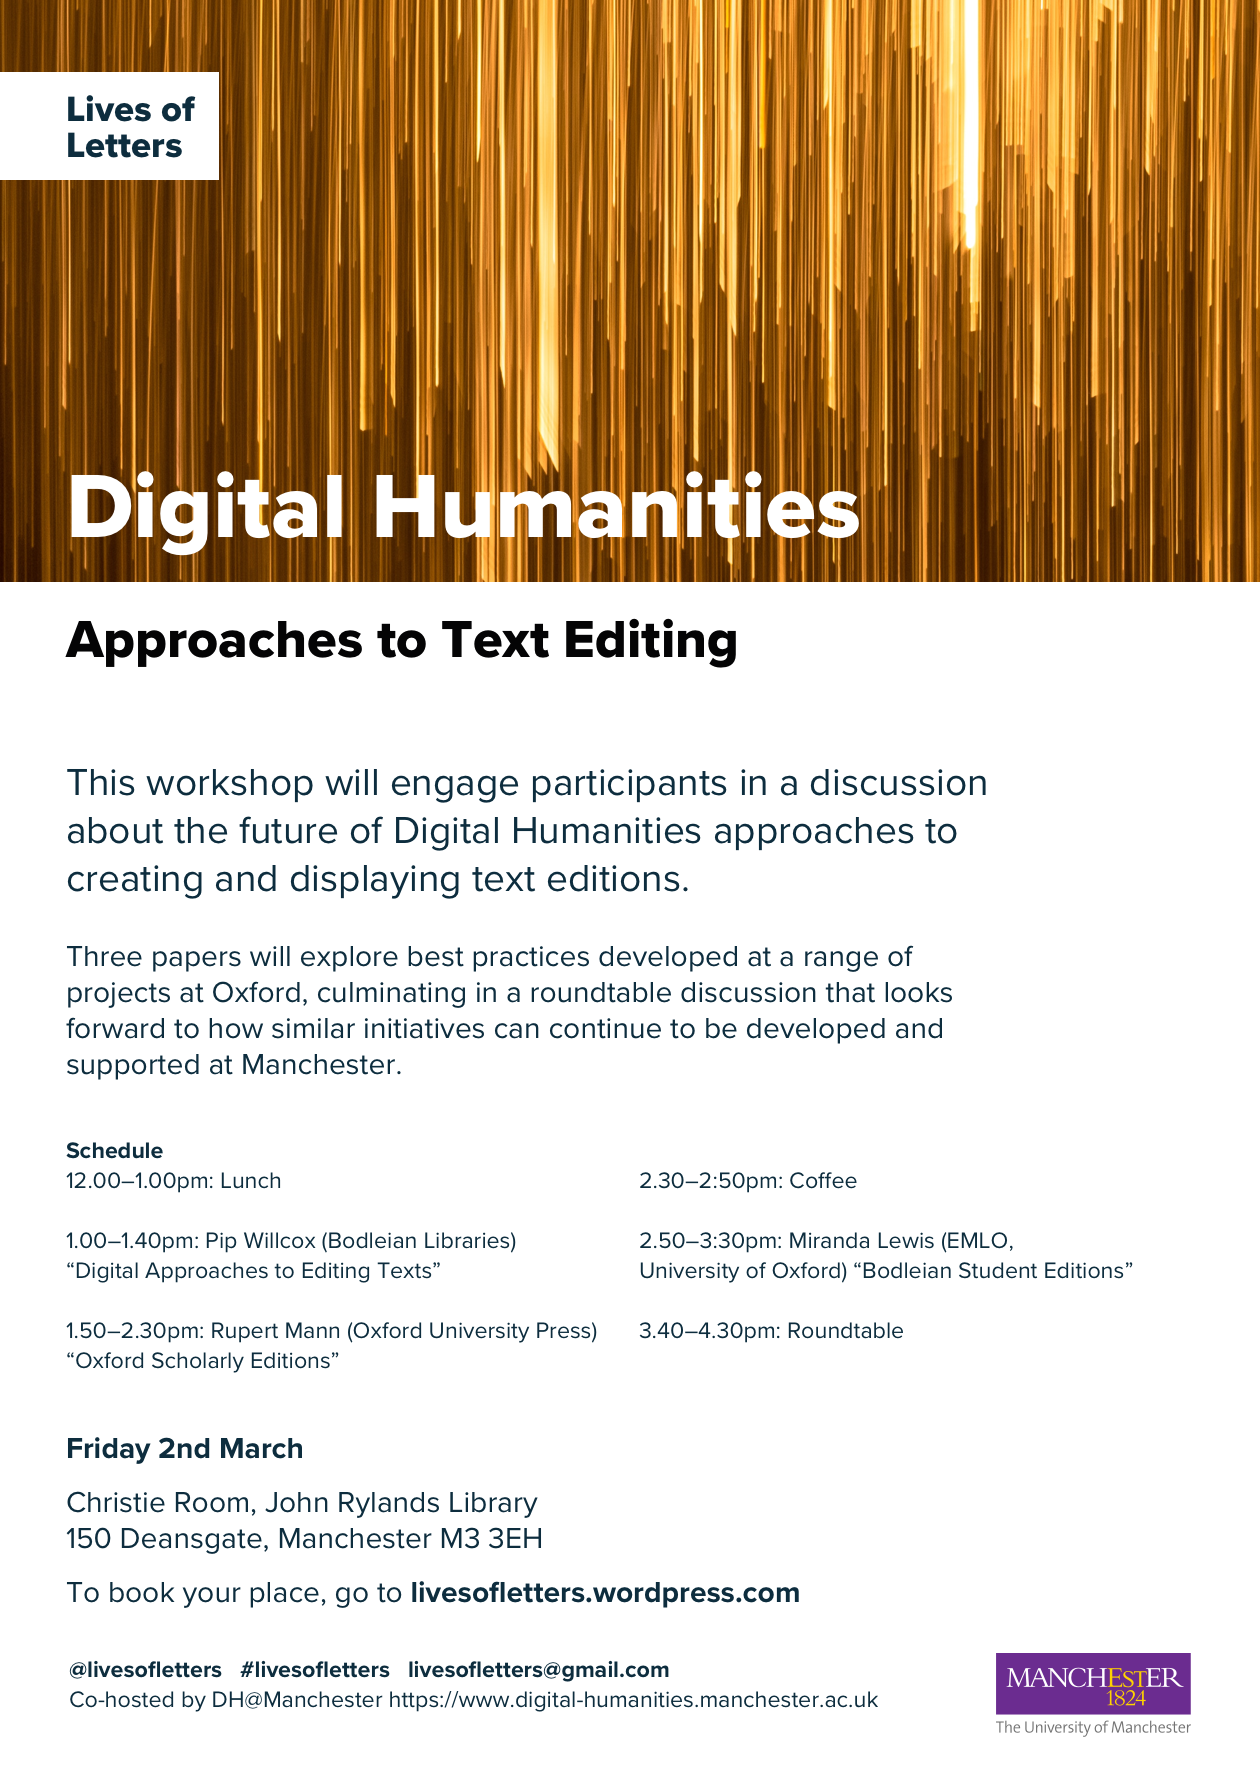 Lives of Letters Digital Humanities event 2 March 2018 Print